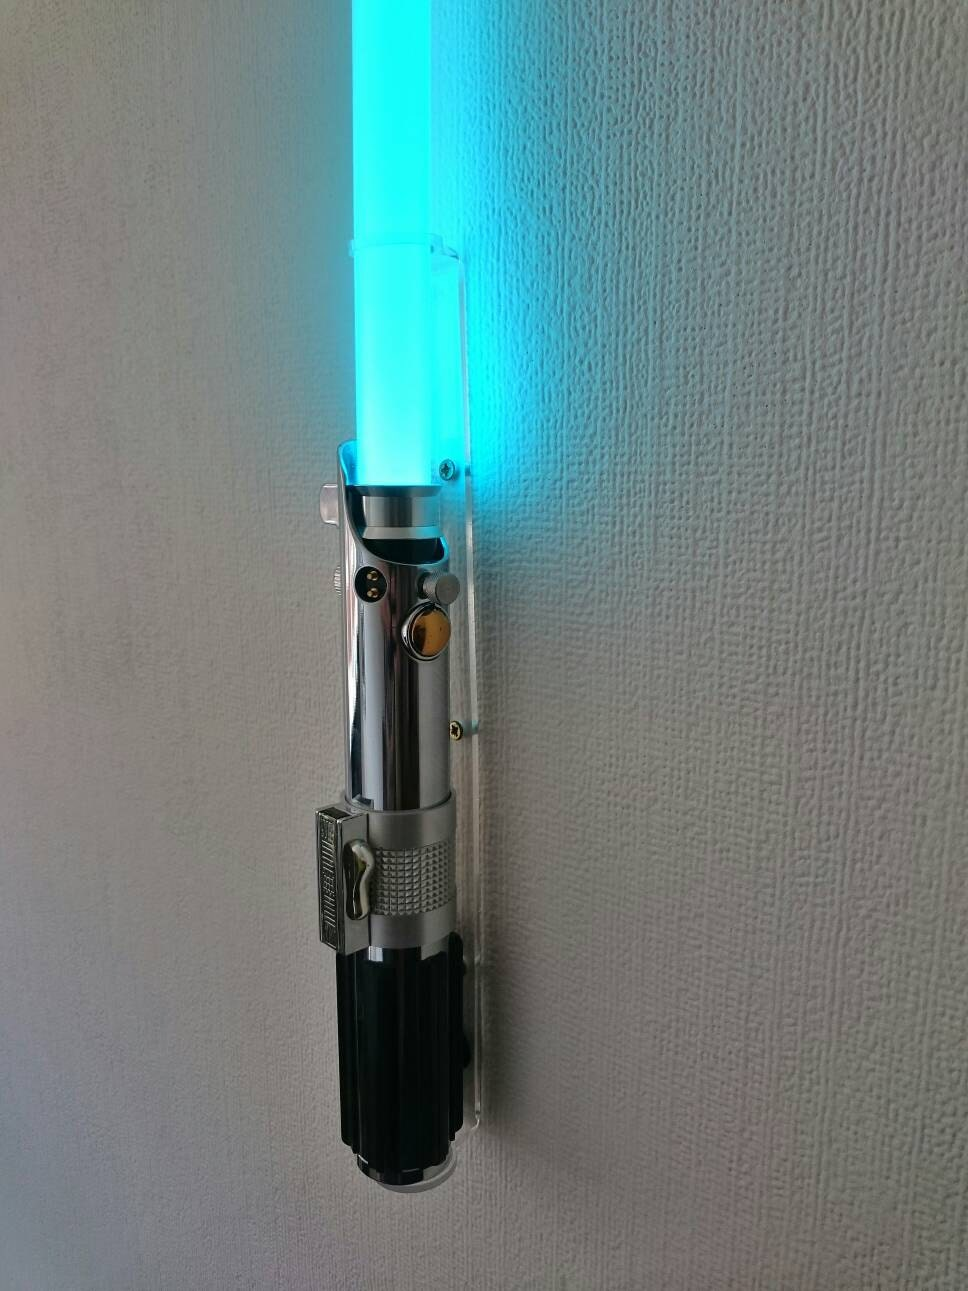 Wall Hung Lightsaber : Custom Lightsaber wall mount. minimalist V2 by DCSabers on Etsy